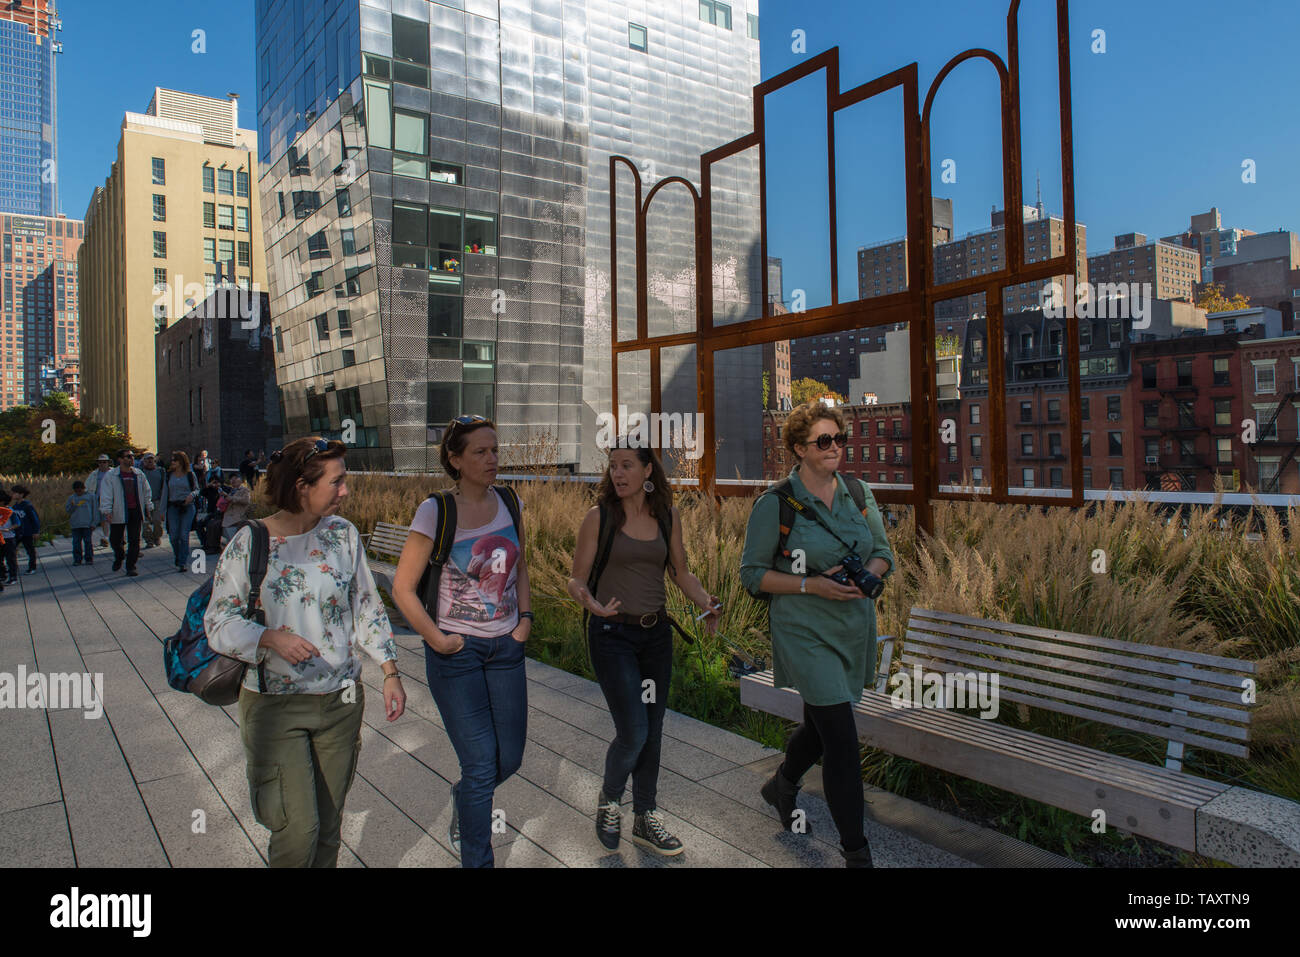 A group of women on the high line pass in front of 'Altar' a sculpture by artist Kris Martin (b.1972 in Belgium) - Stock Image